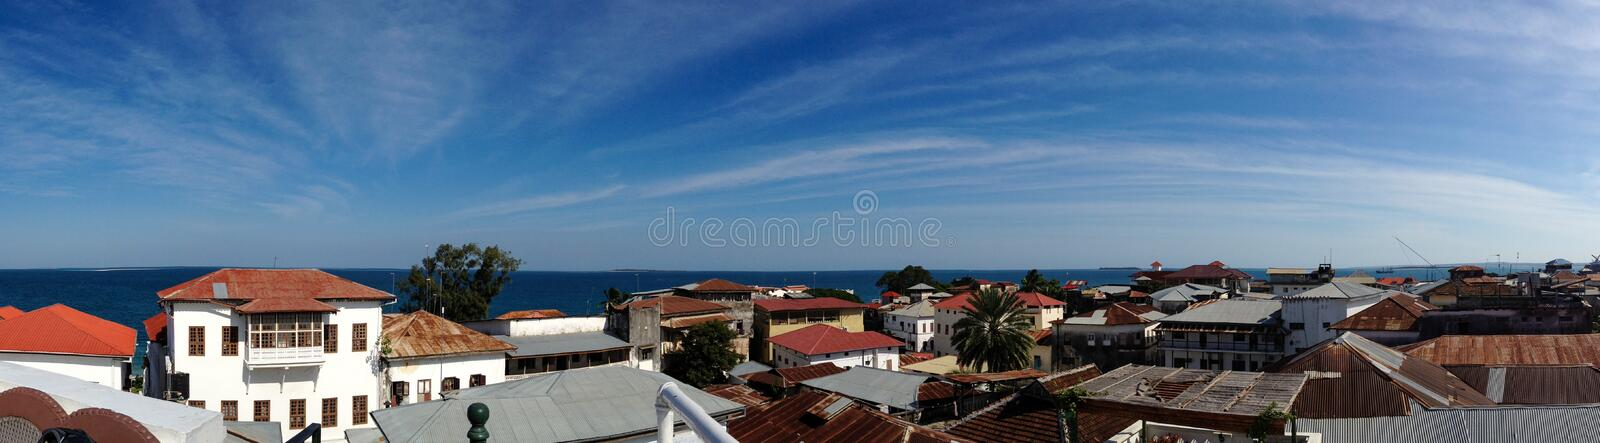 Panorama Over Rooftops. Panorama showing the view over the roof tops of Stone Town, Zanzibar stock photo